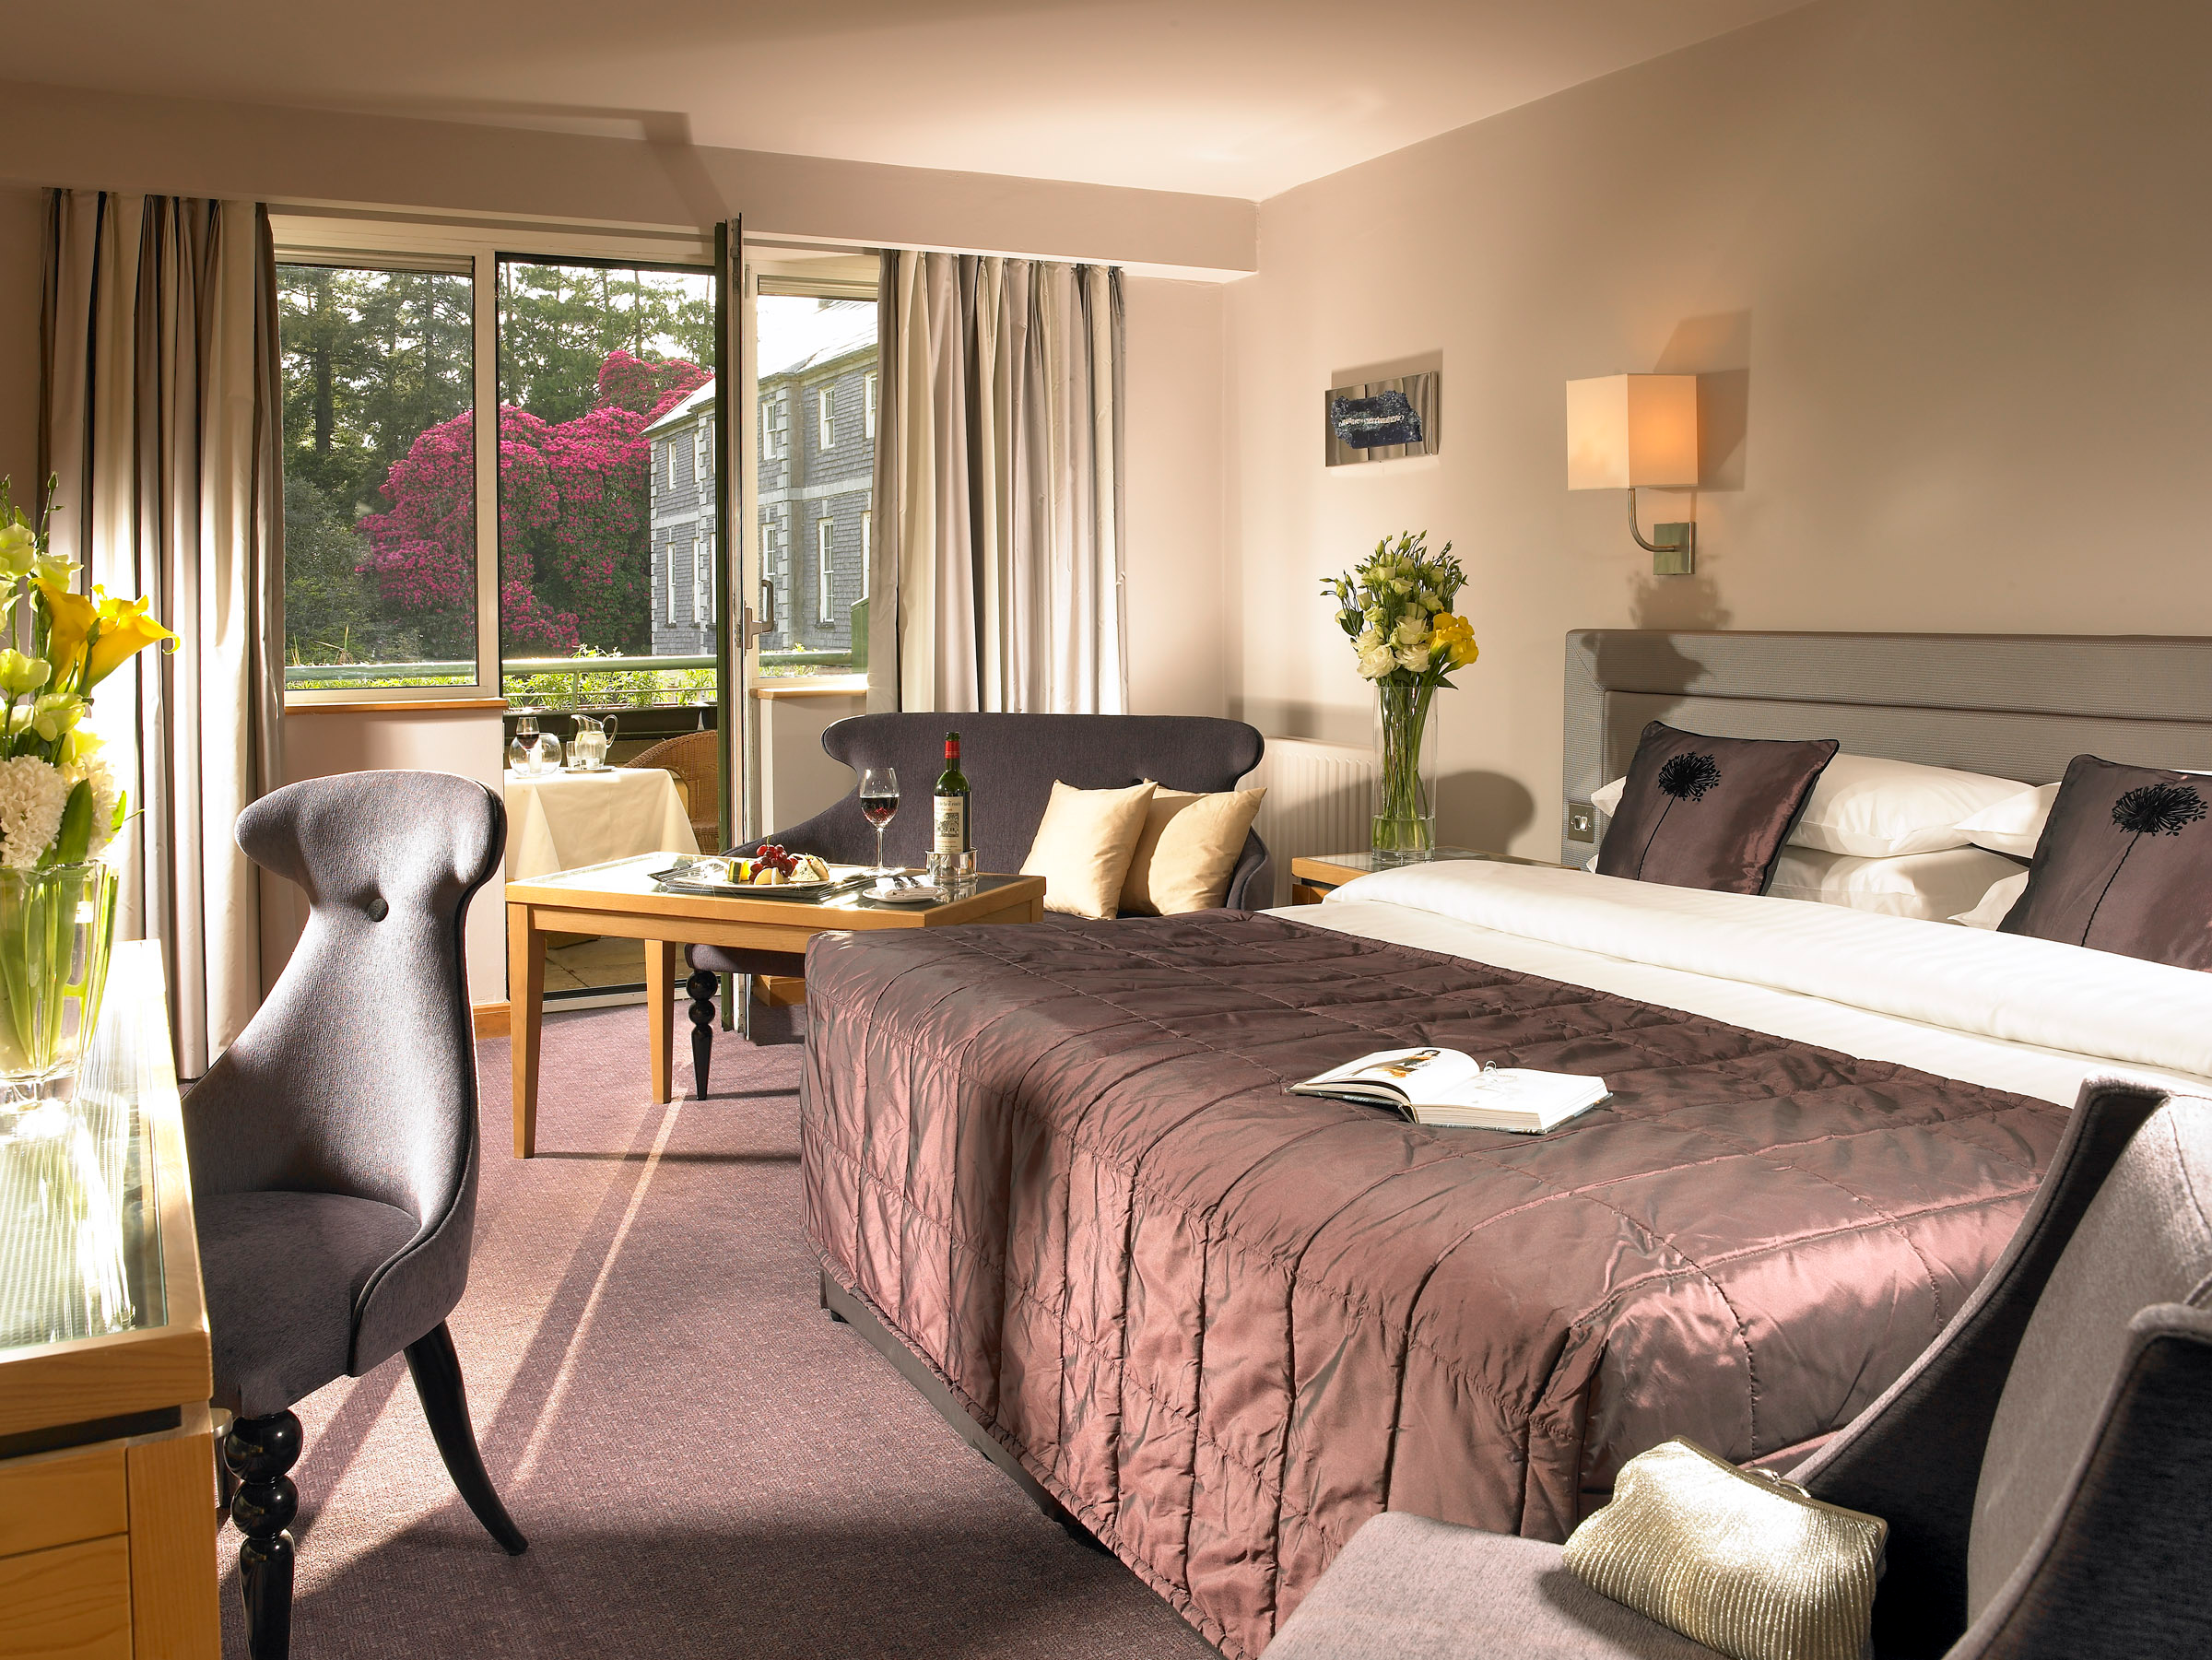 maryborough hotel - luxury hotel and spa - discovering cork